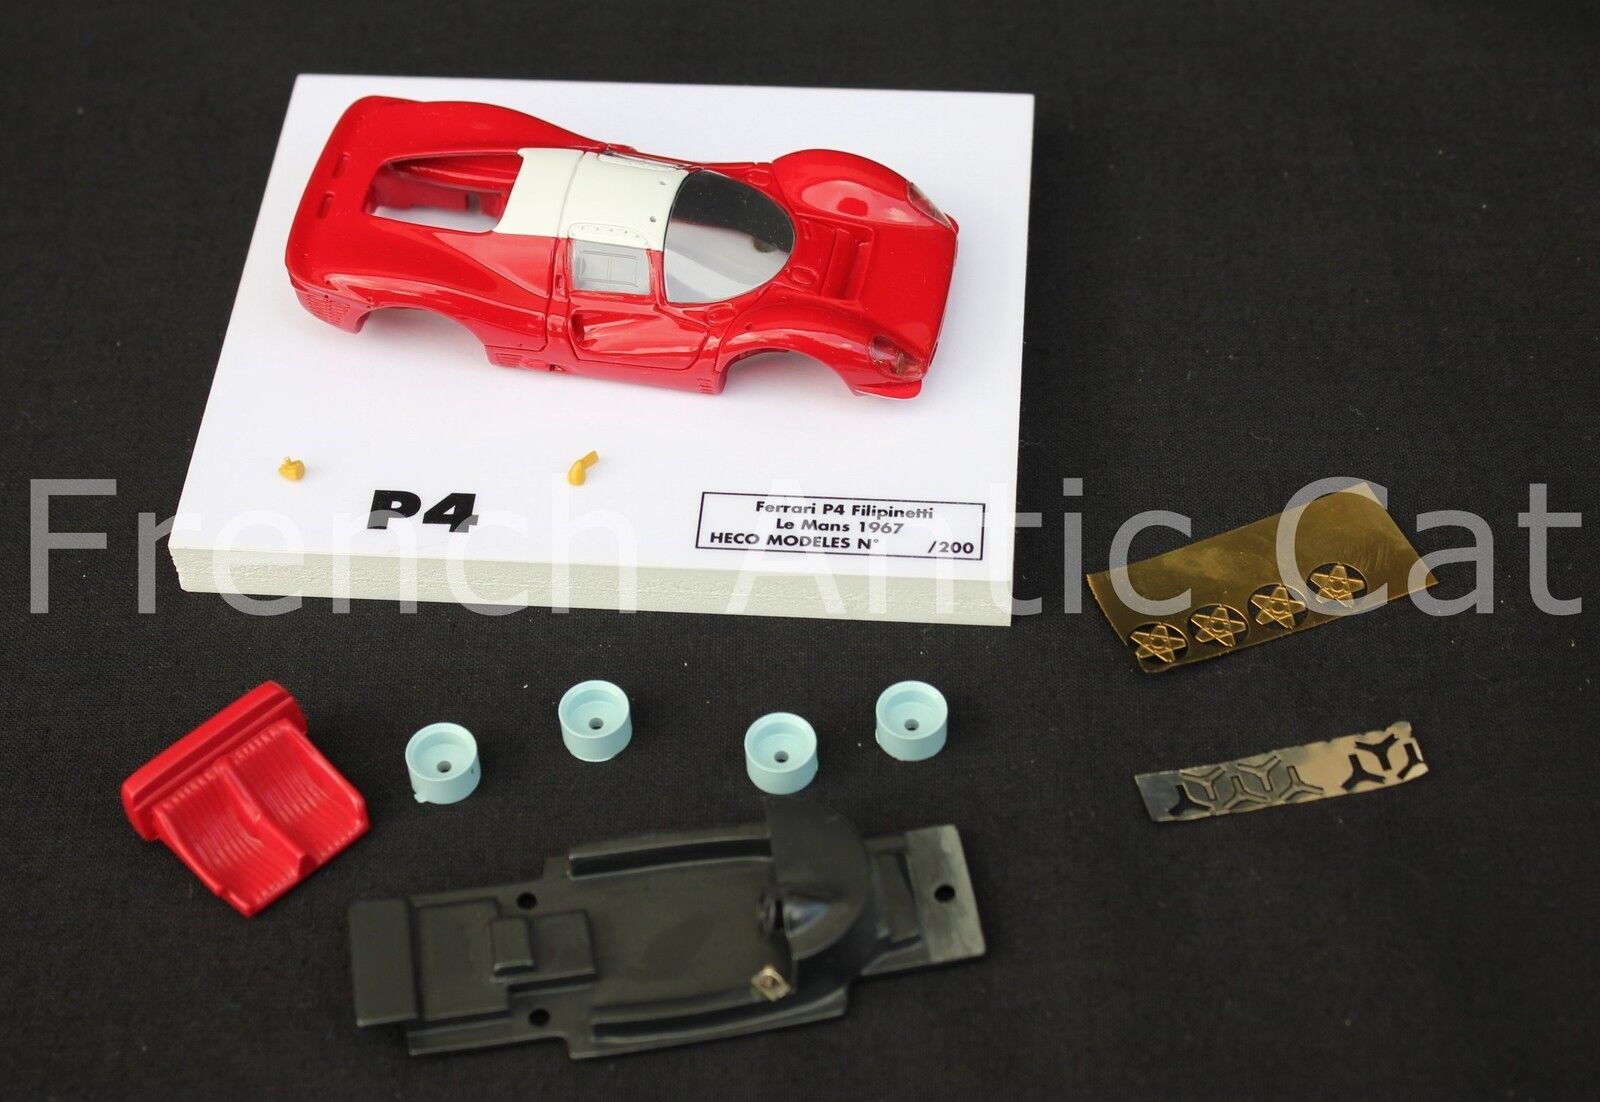 Ot '' Car Ferrari P4 le Mans Filipinetti 1967 Red 1 43 Heco Models 200 Ex